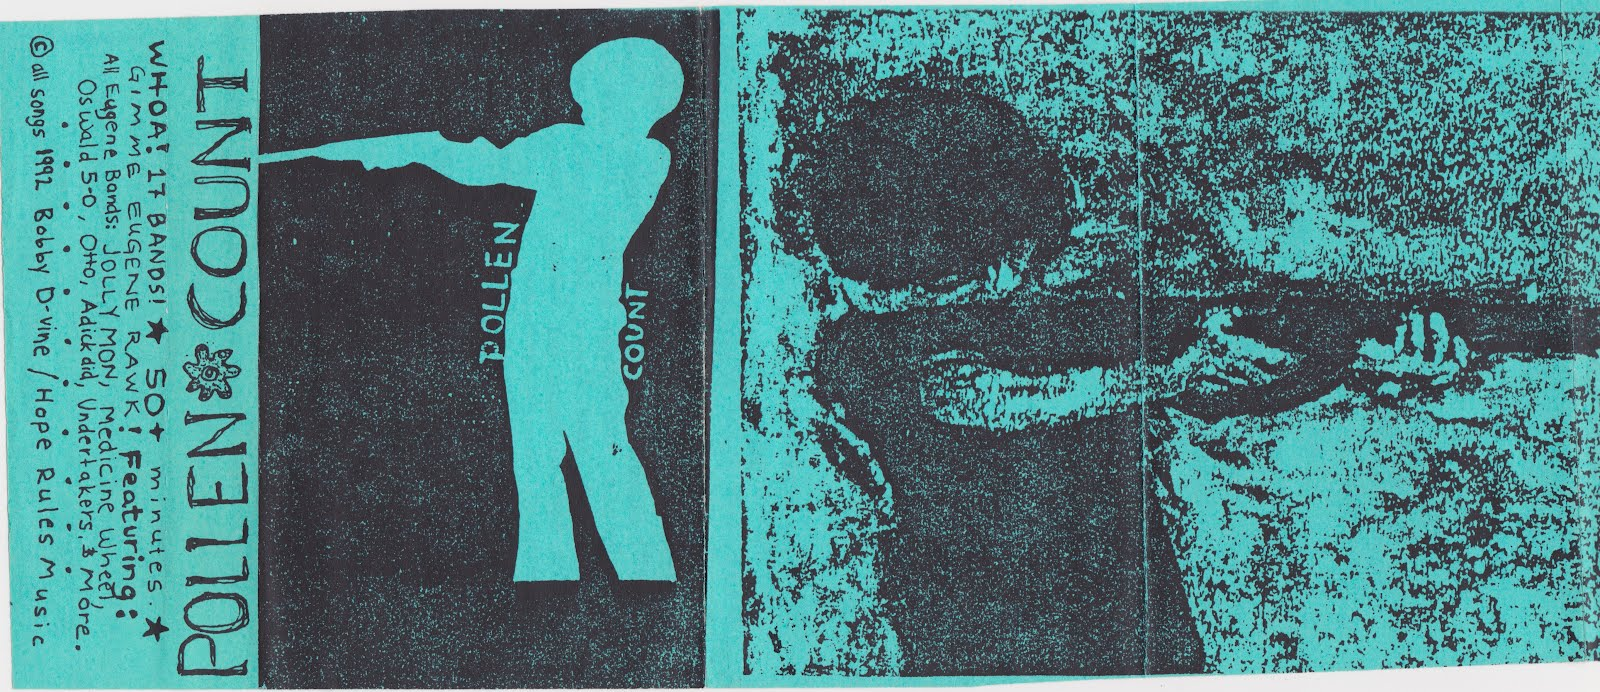 Panic on 13th: Pollen Count - (Cassette Only Compilation